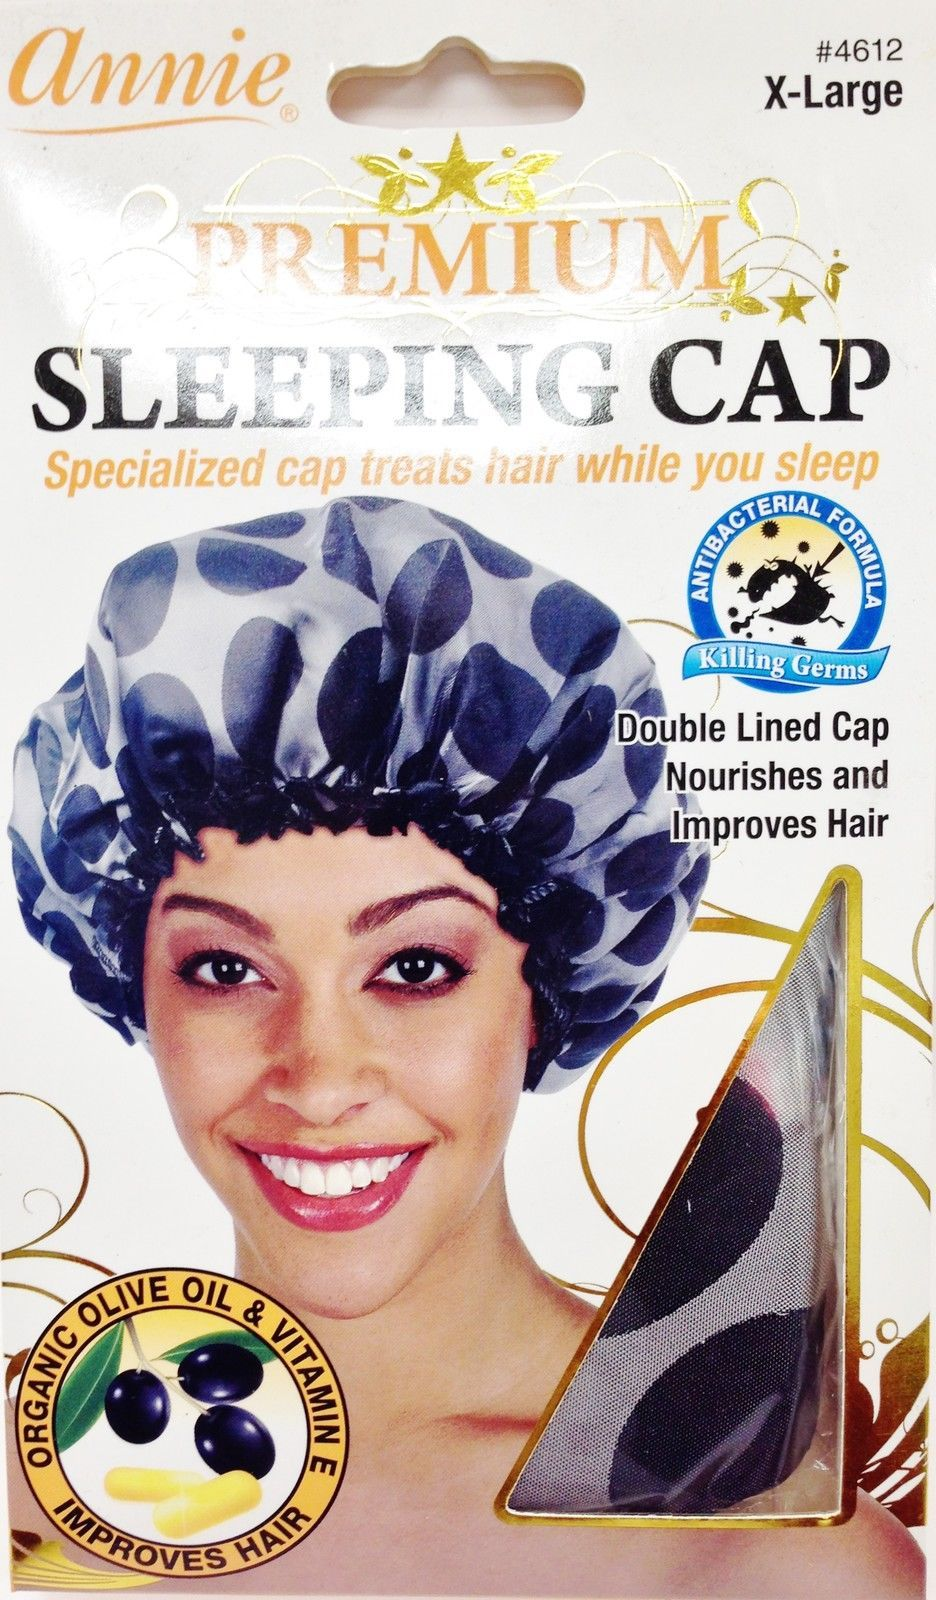 ANNIE PREMIUM SLEEPING CAP DOUBLE LINED CAP NOURISHES HAIR X-LARGE #4612  DOTS